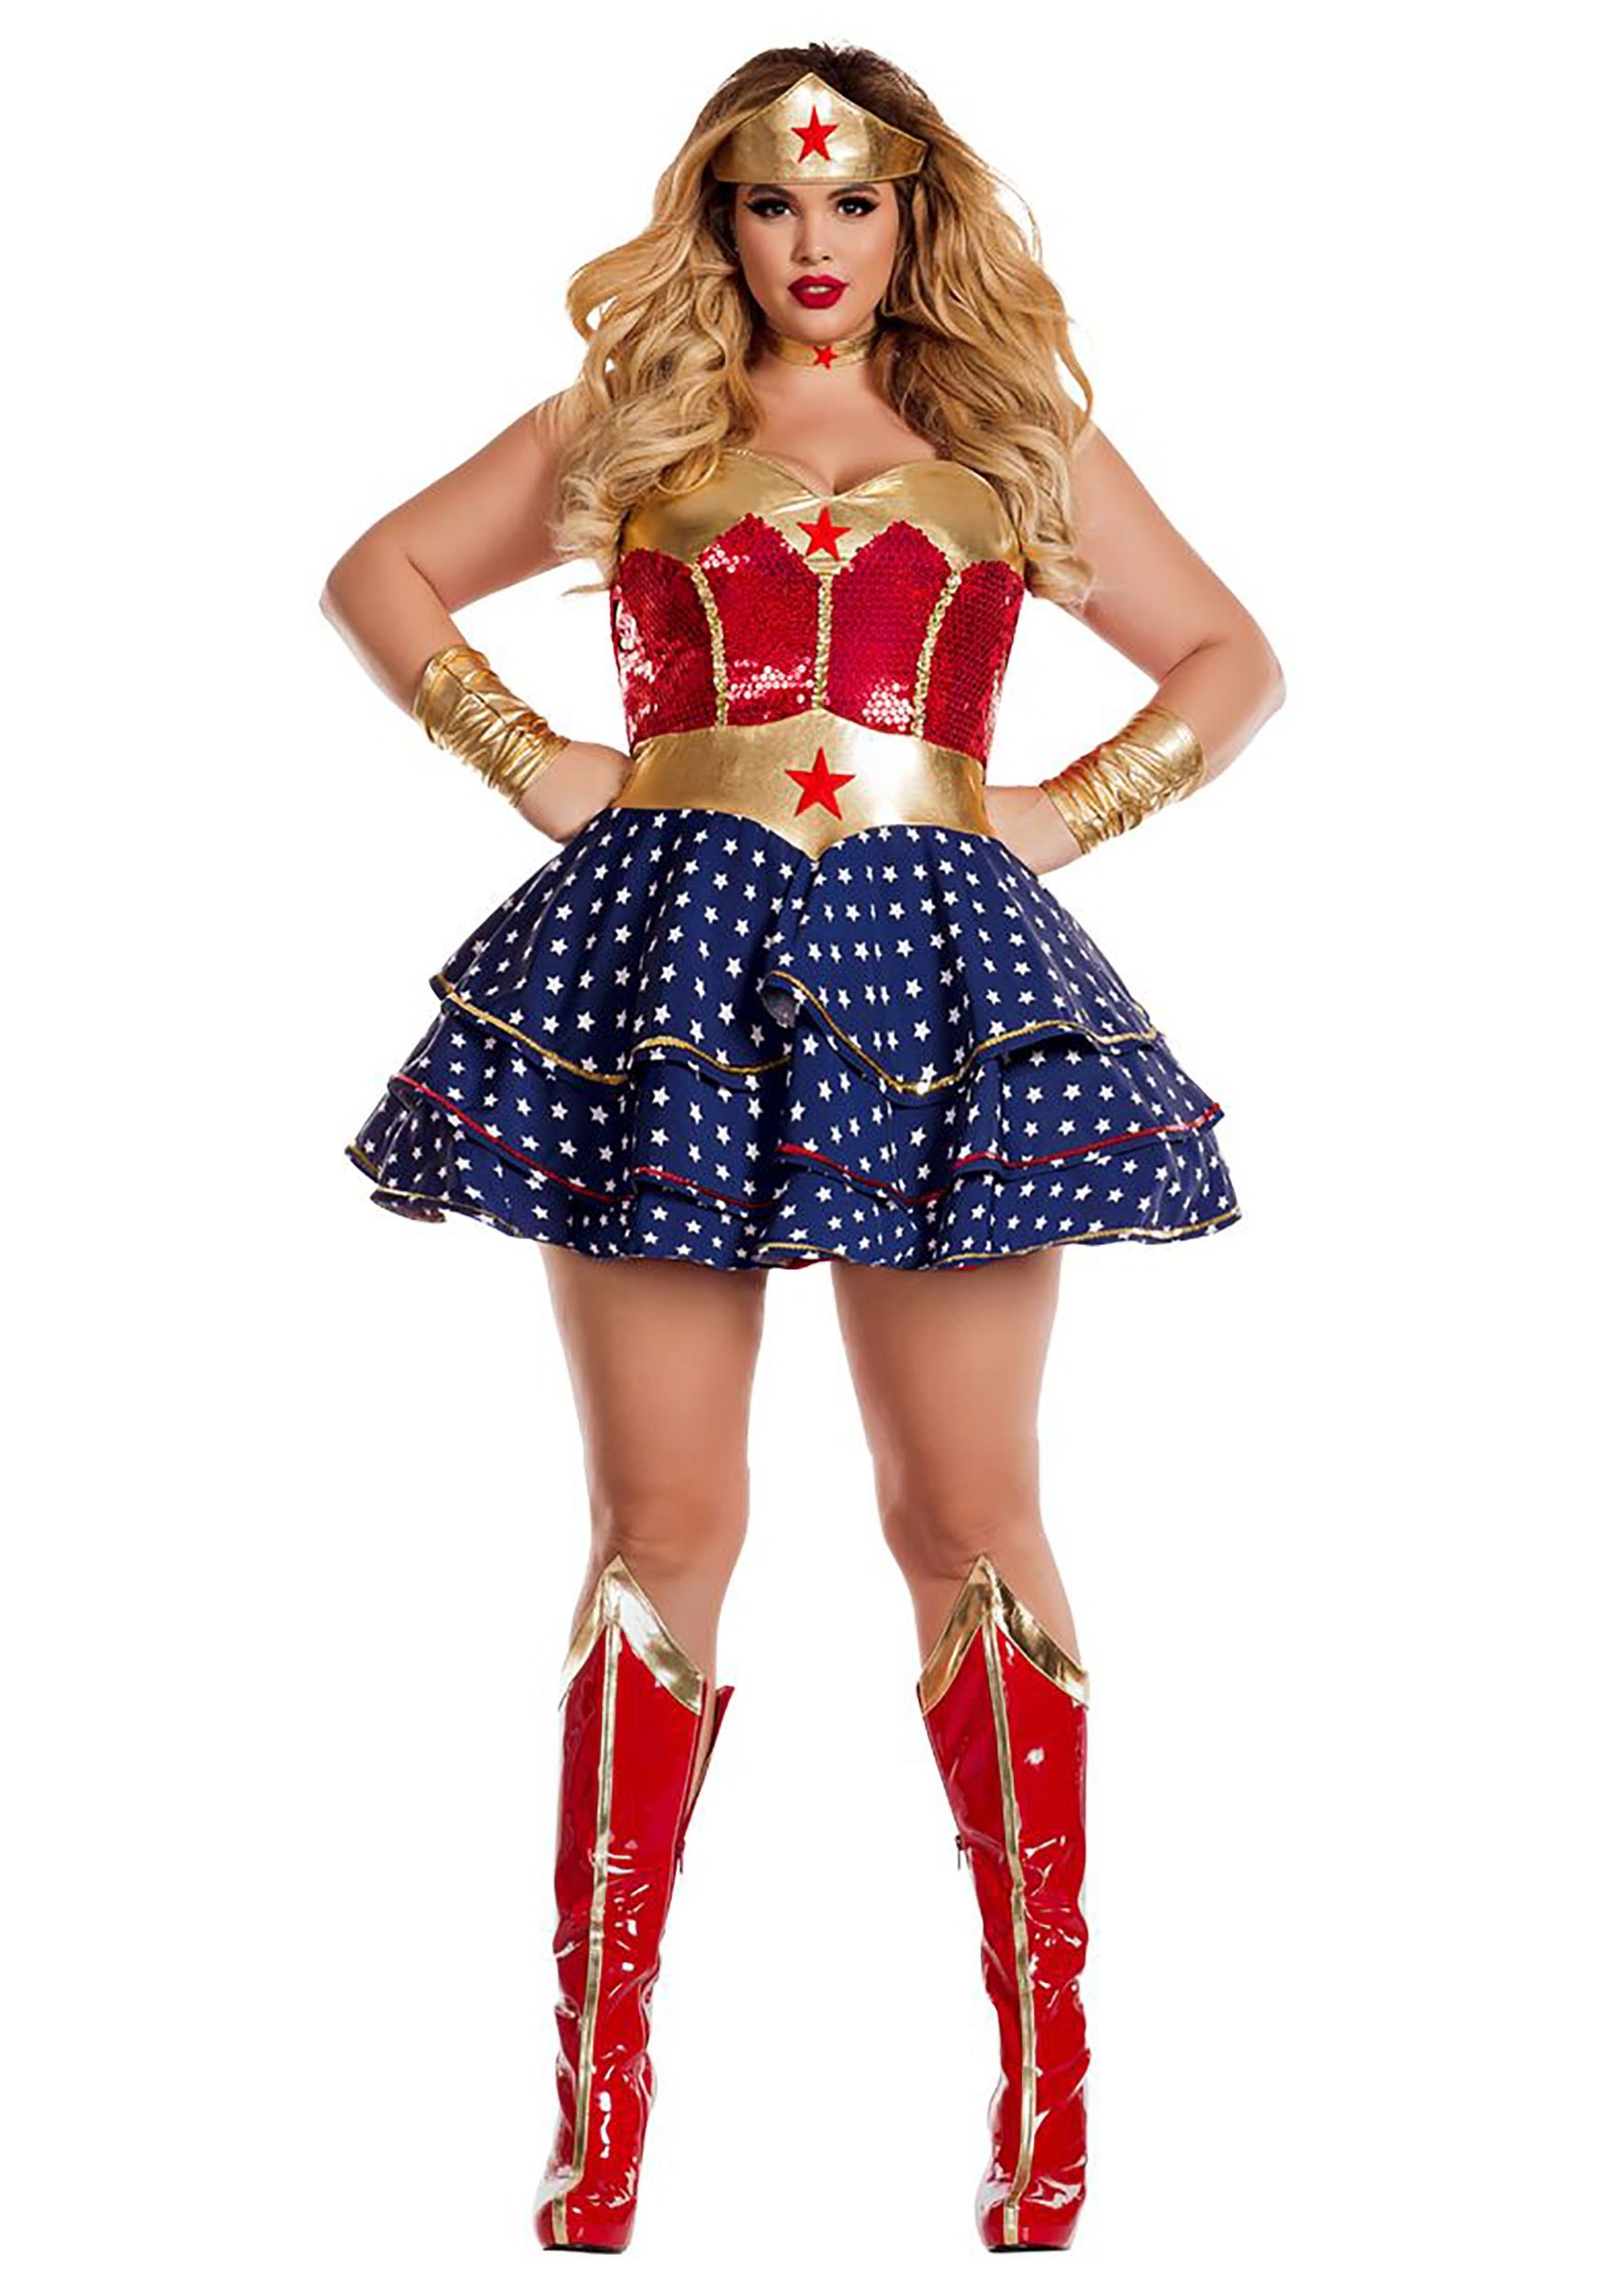 Wonderful Sweetheart Plus Size Womens Costume  sc 1 st  Halloween Costumes & Wonderful Sweetheart Plus Size Costume for Women 1X 2X 3X 4X